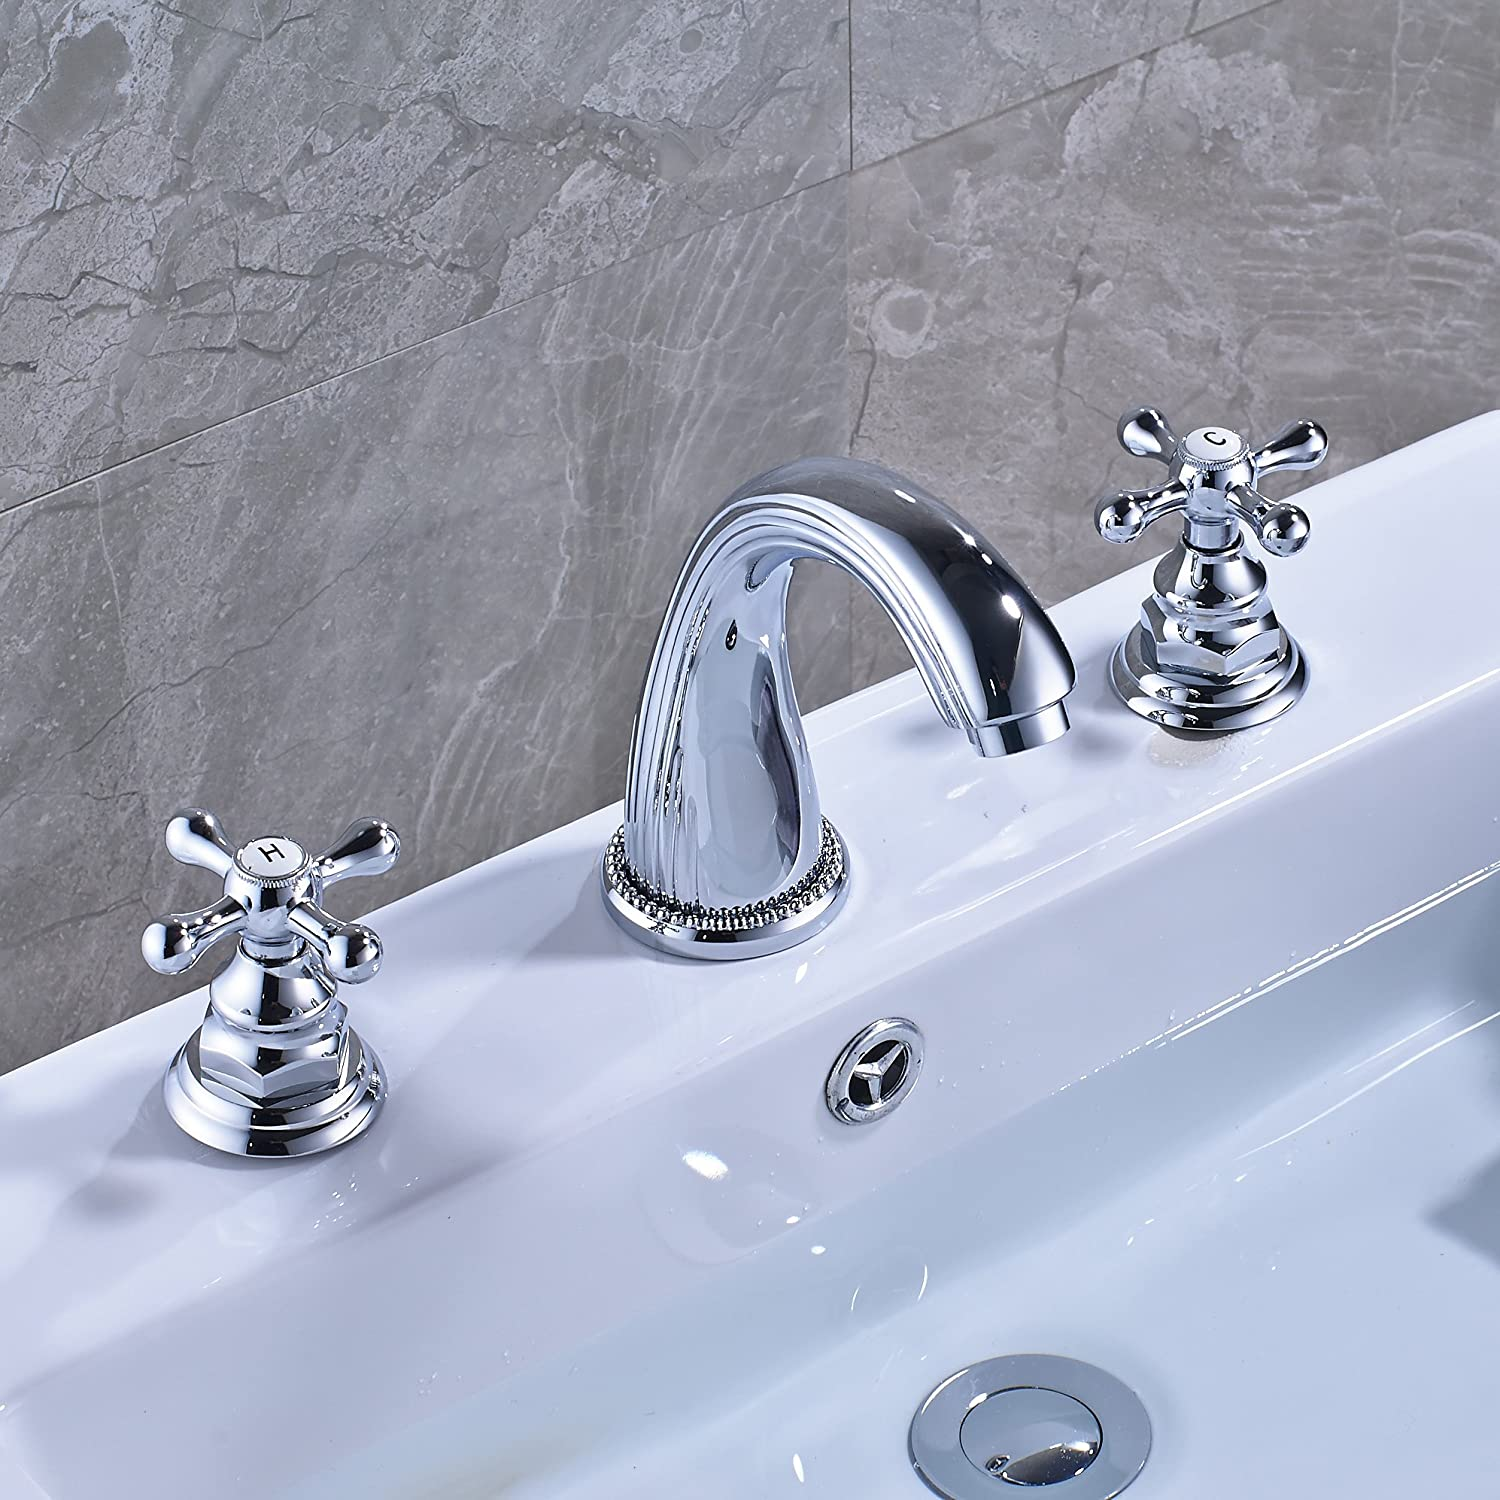 Rozin Chrome Finish Widespread Two Handles Bathroom Sink Faucet 3 Holes Deck Mount Vessel Basin Mixer Tap Rozinsanitary